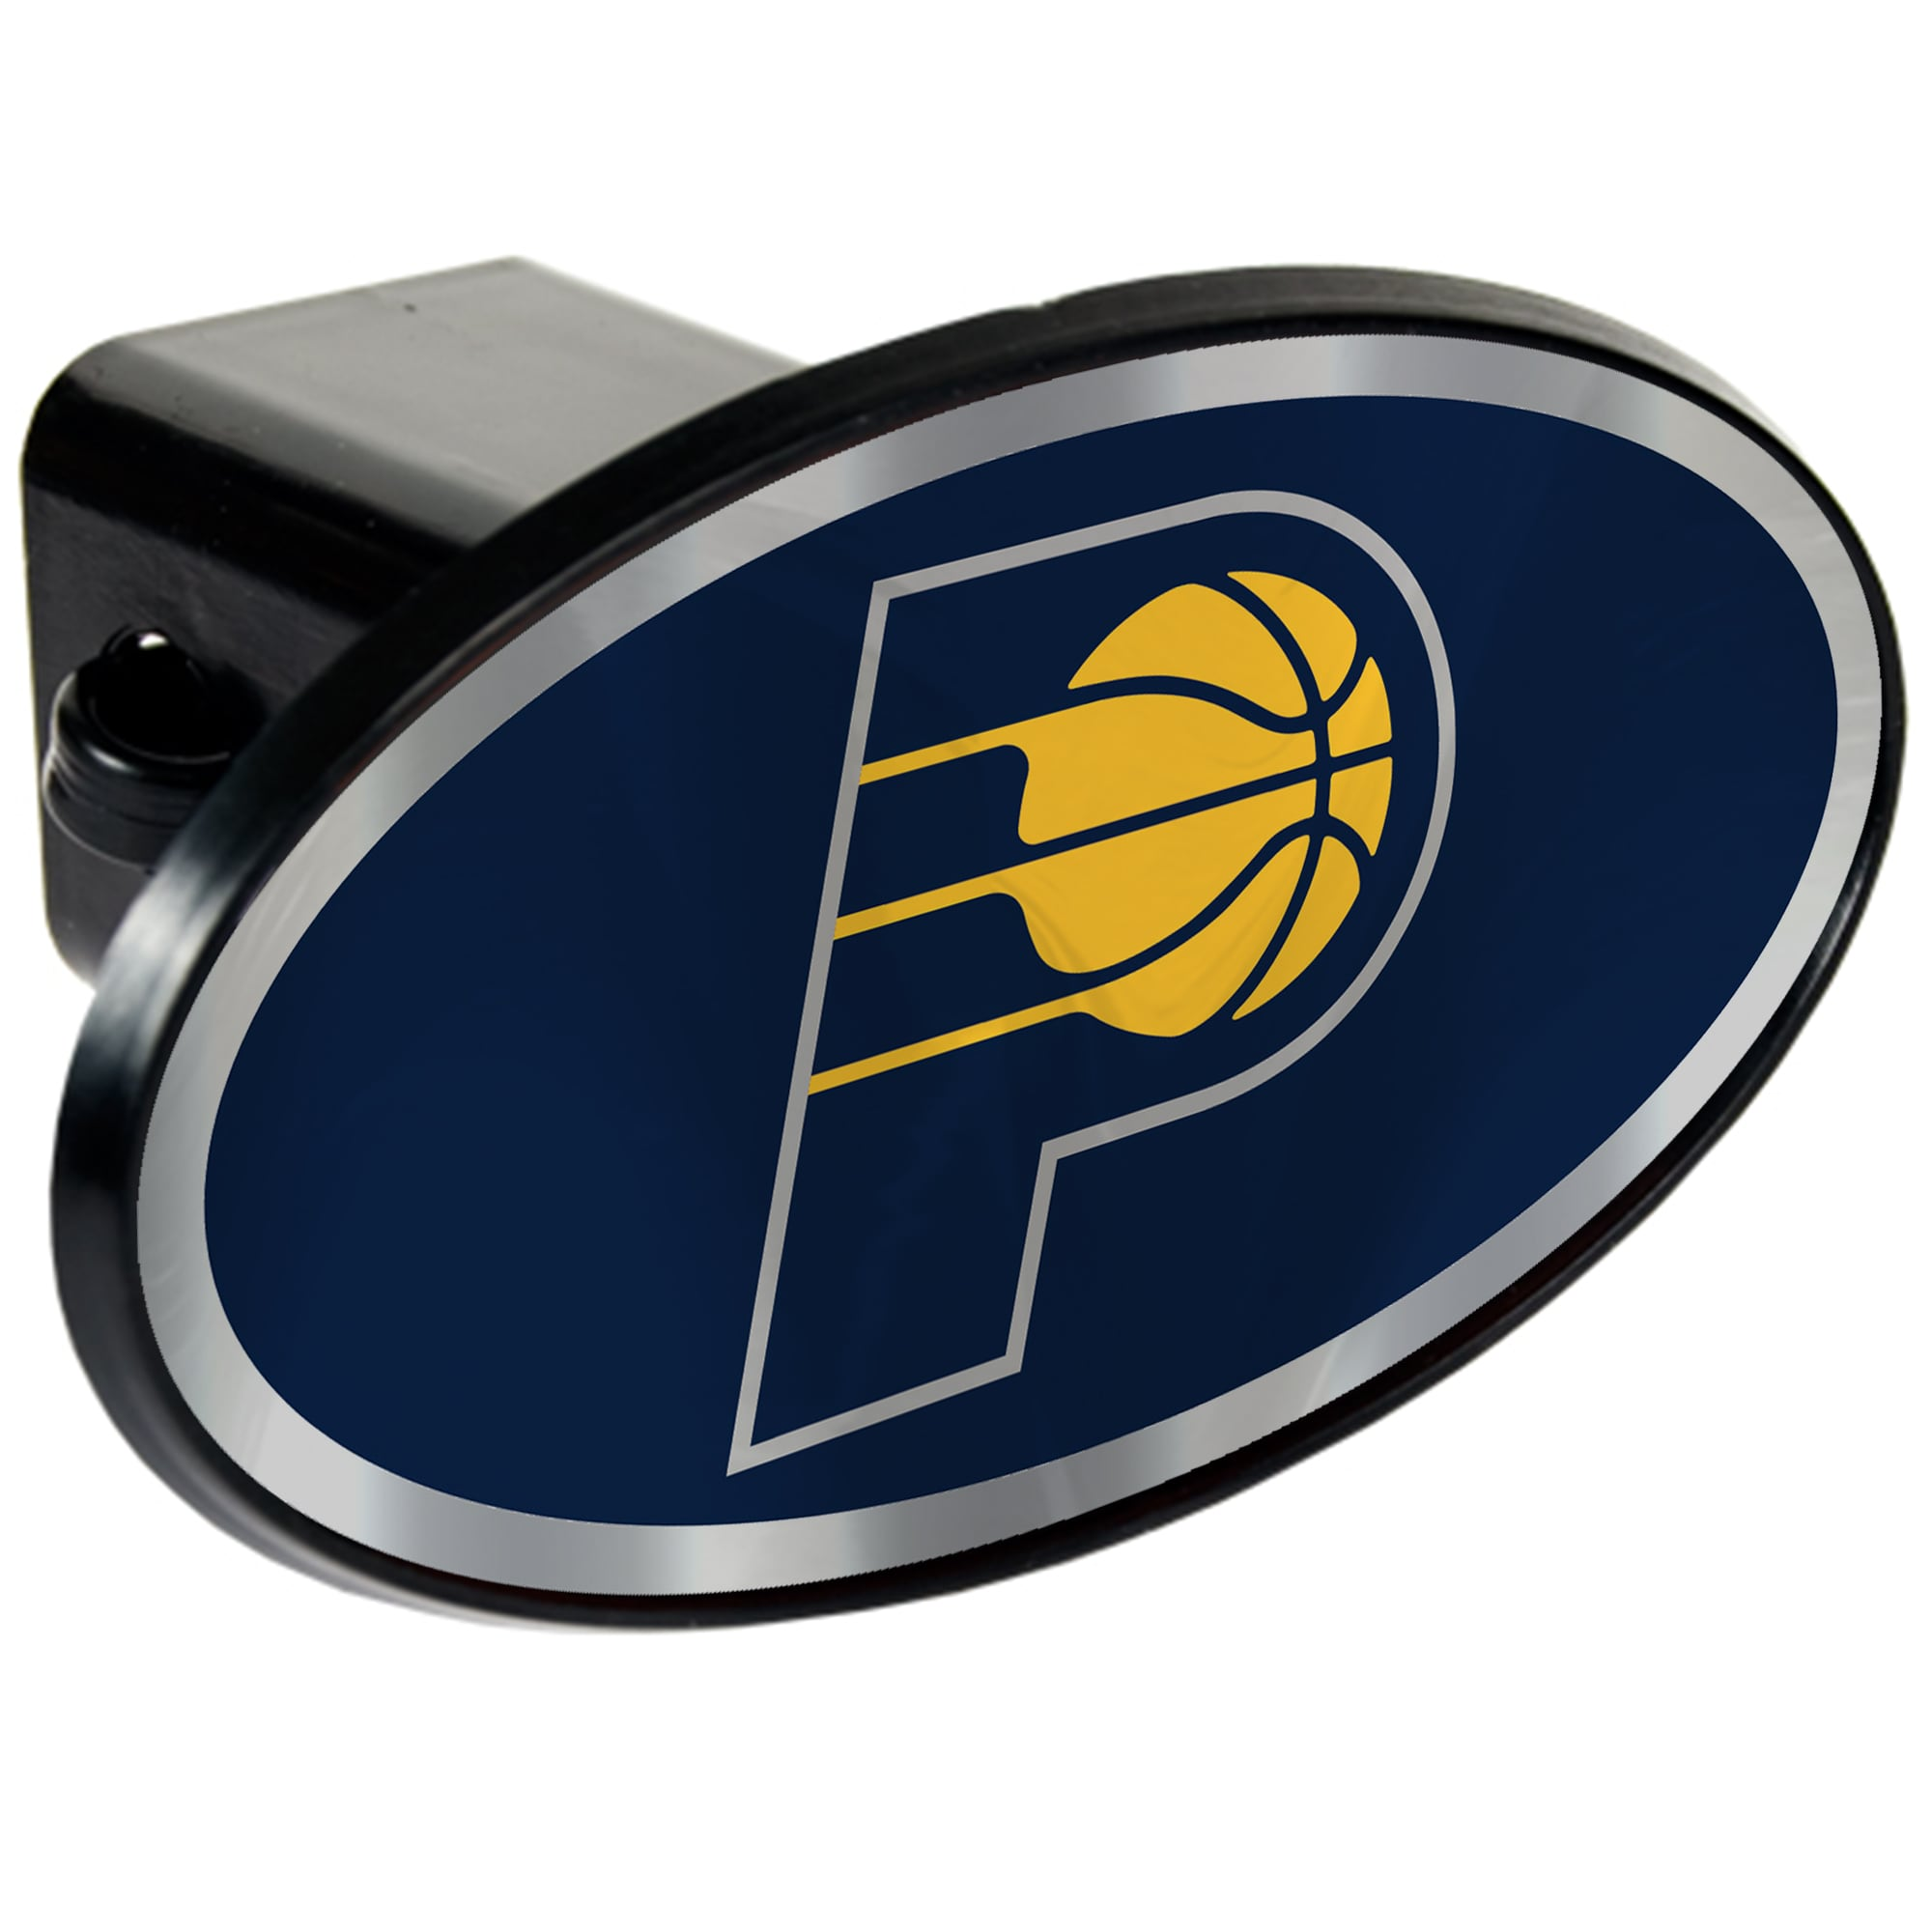 Indiana Pacers Oval Car Hitch Cover